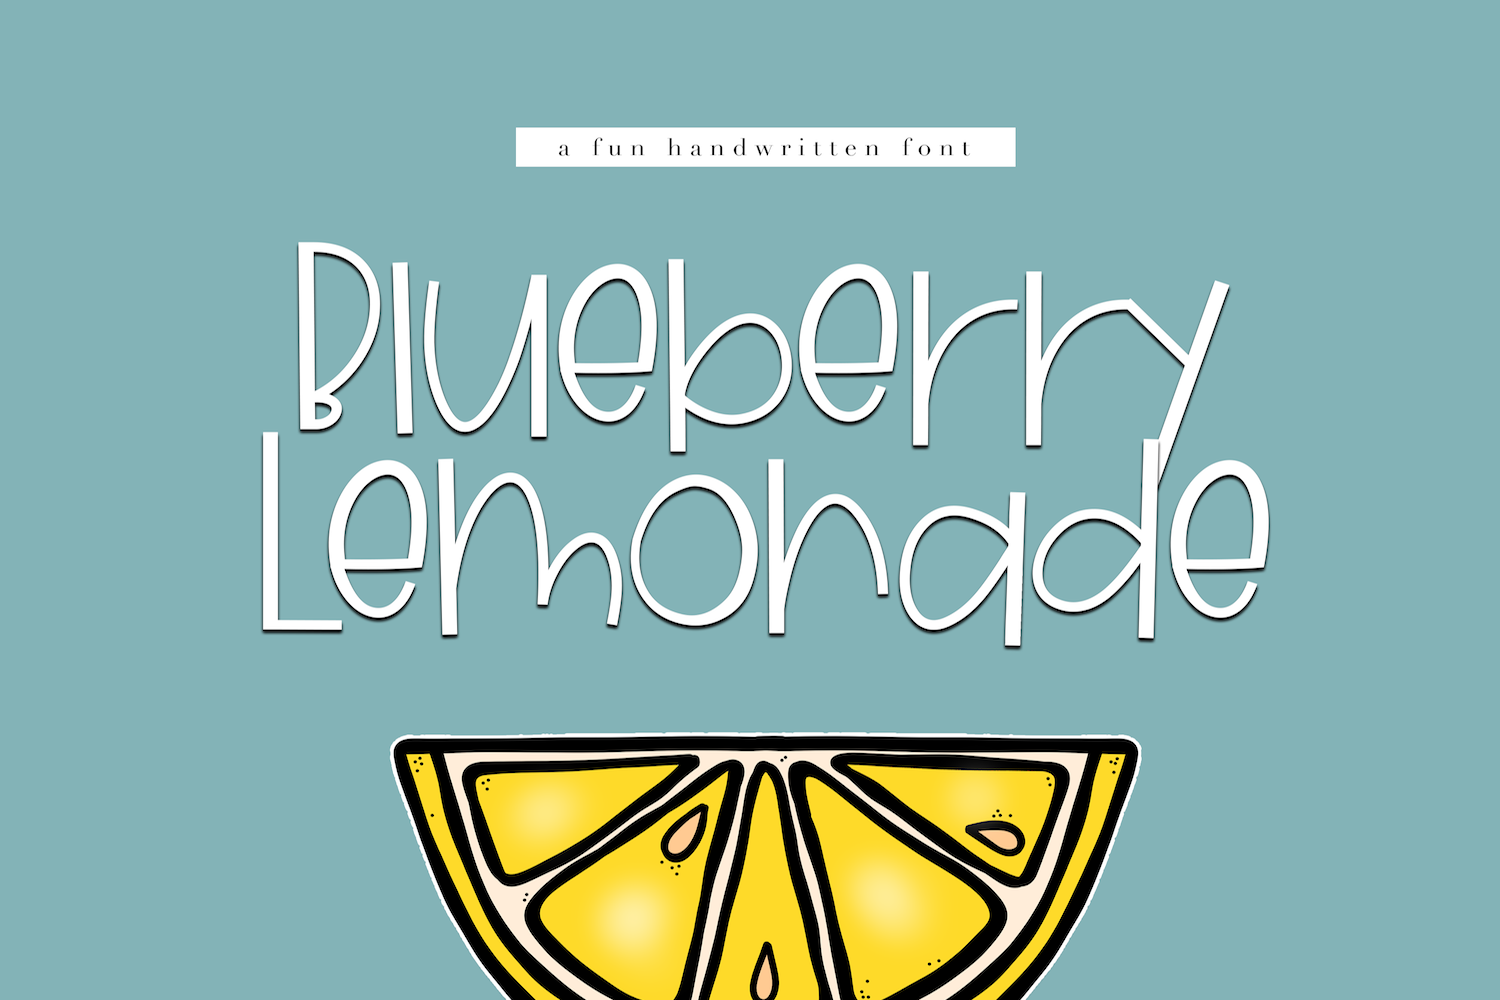 Blueberry Lemonade - A Fun Handwritten Font example image 1